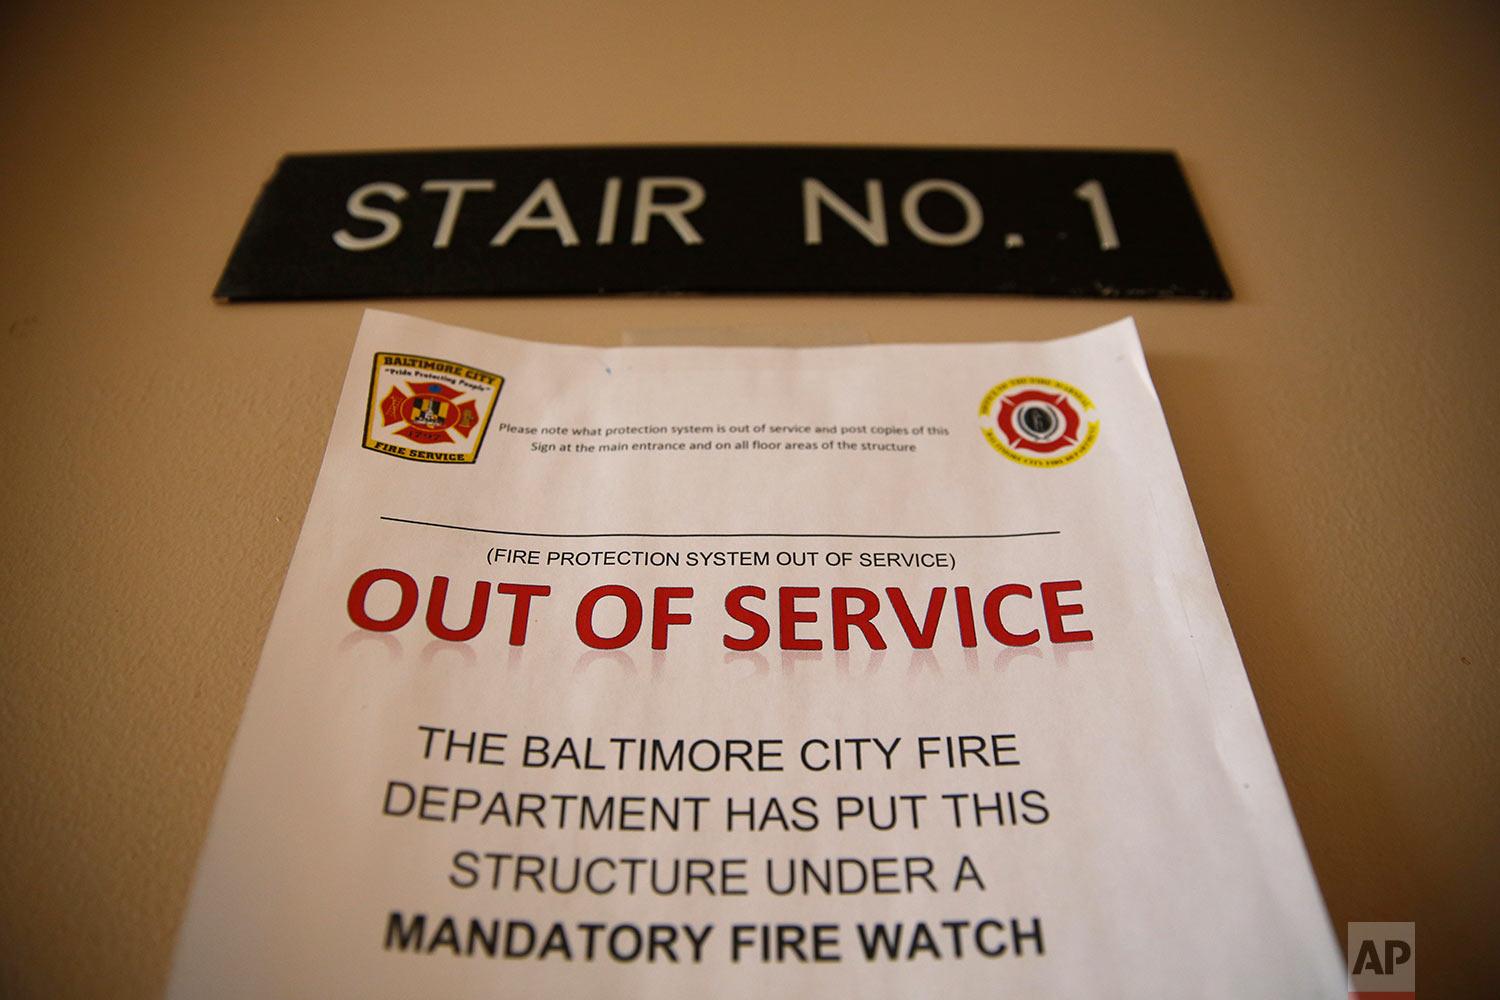 In this Feb. 22, 2019 photo, a sign alerts residents in Rosemont Tower in Baltimore that the fire sprinkler system is out of service, requiring a firefighter to stand watch around the clock. (AP Photo/Patrick Semansky)